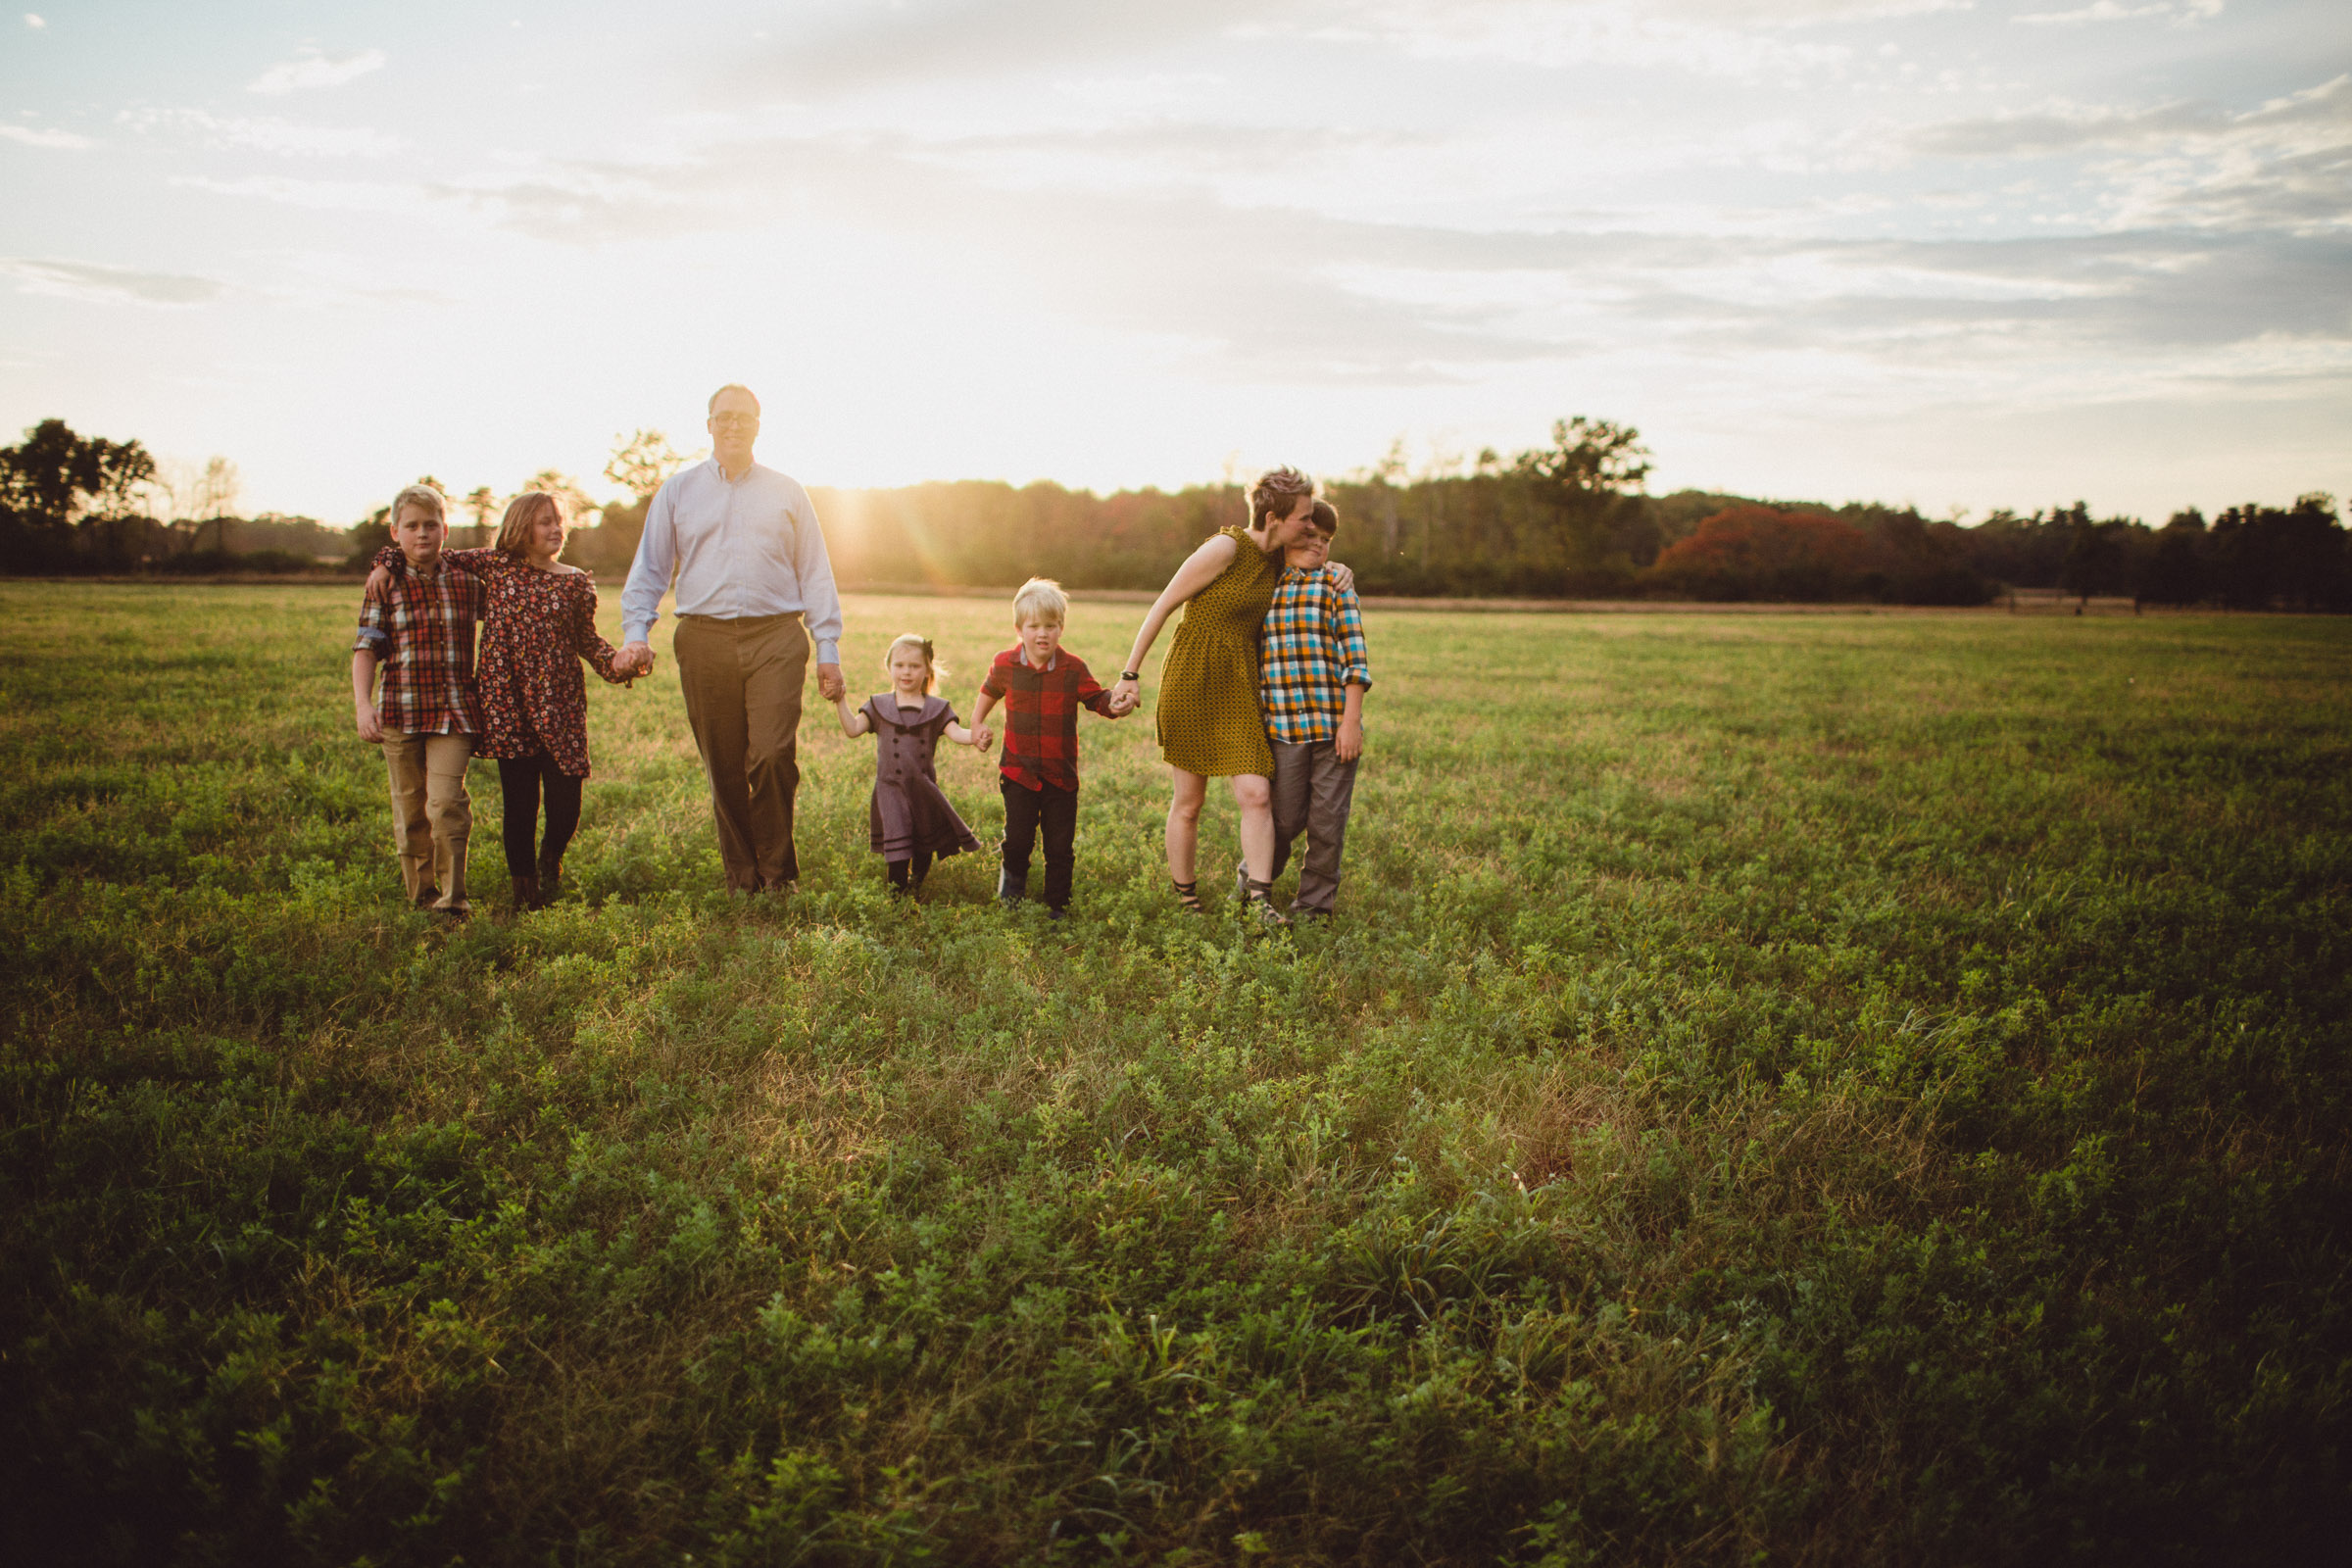 family walking together in wide open field with sun setting behind them